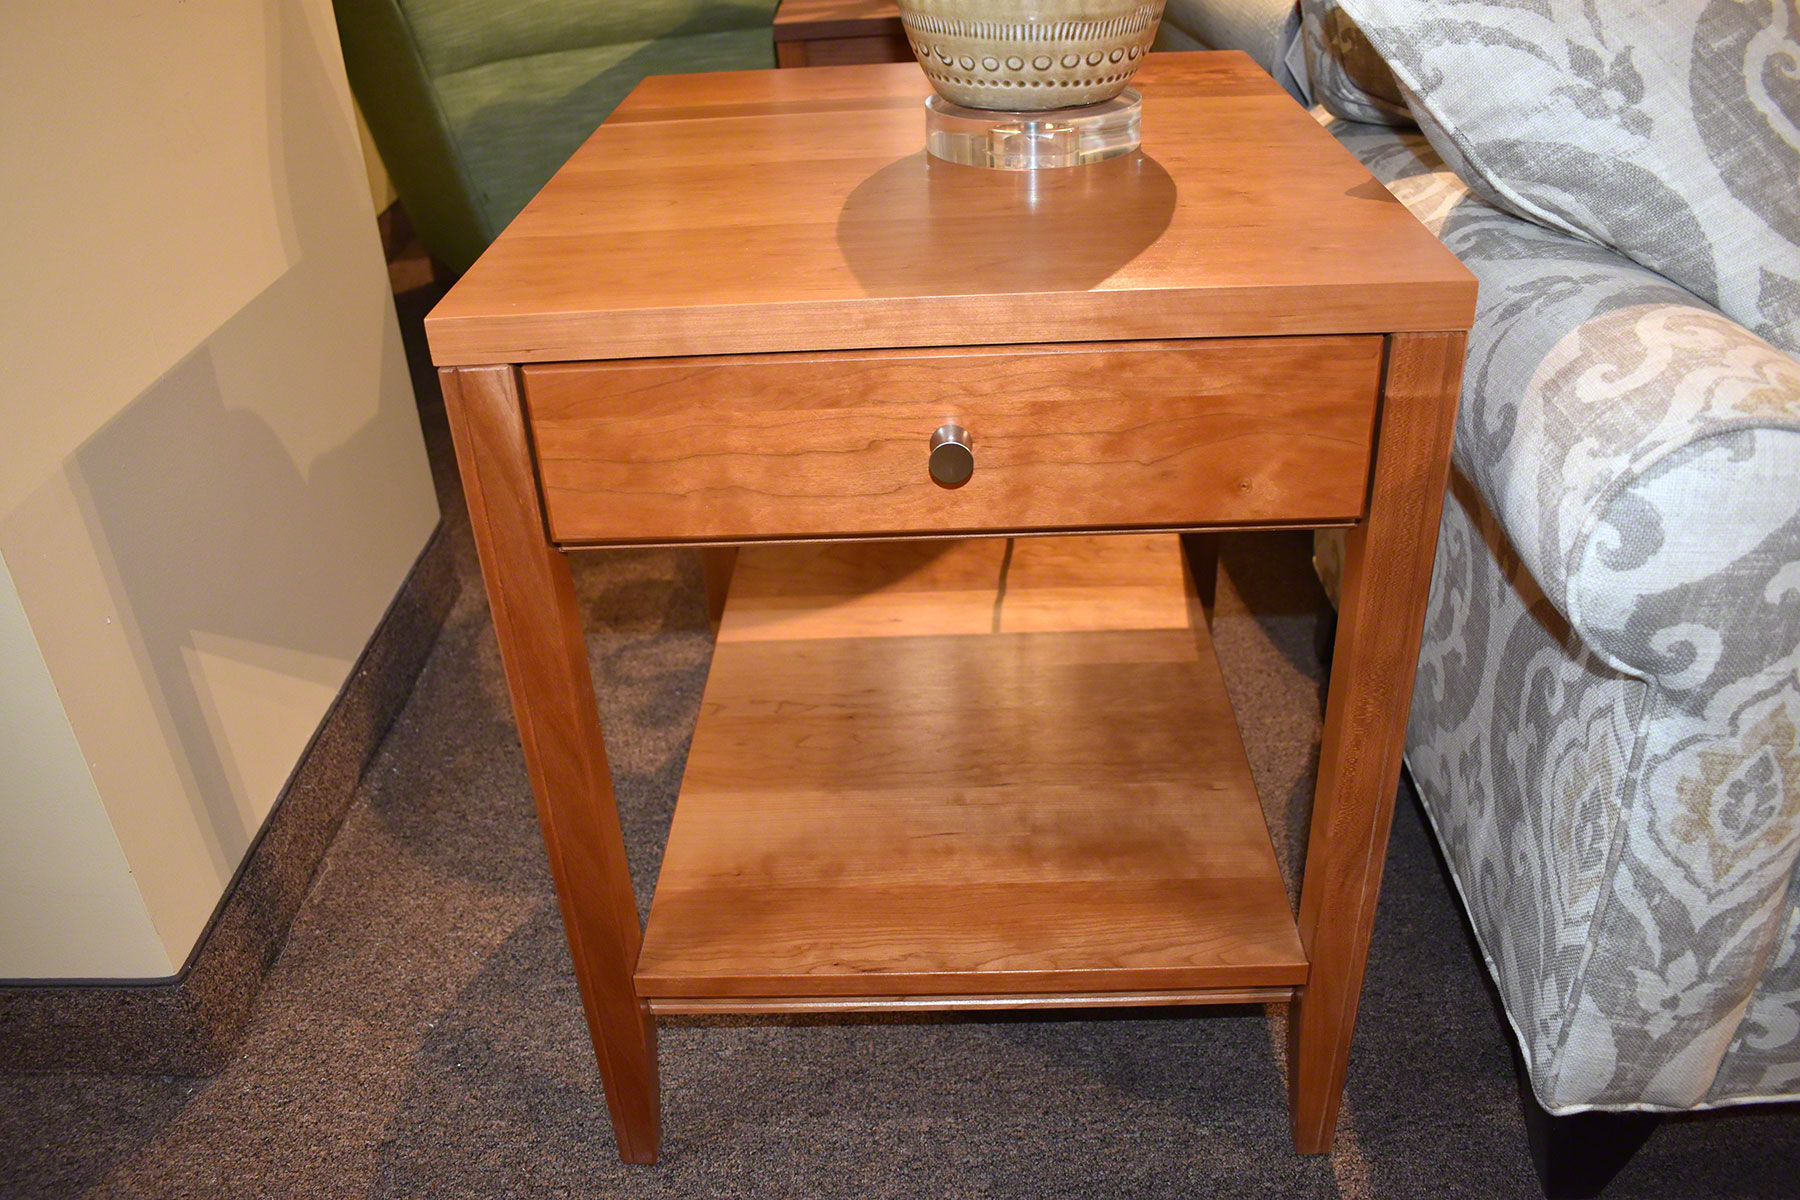 kingston small end table fly night northampton natural cherry bedside grey wash vanity lights painted oak and chairs north shore office furniture thomasville spray painting old